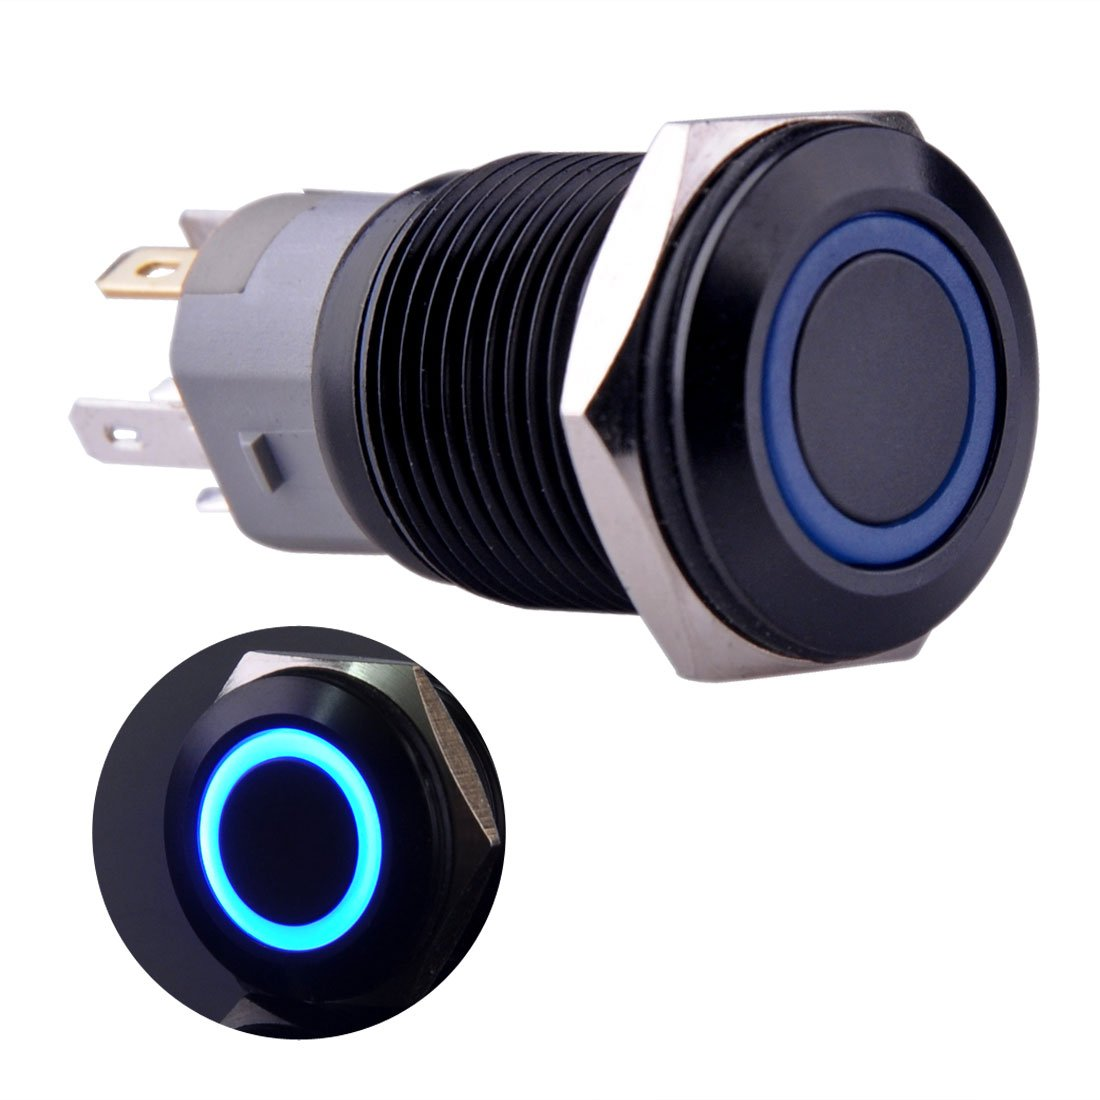 Ulincos Momentary Push Button Switch U16f1 1no1nc Black Metal Shell Pushbuttons And Latching On Off In Blue White With Led Ring Suitable For